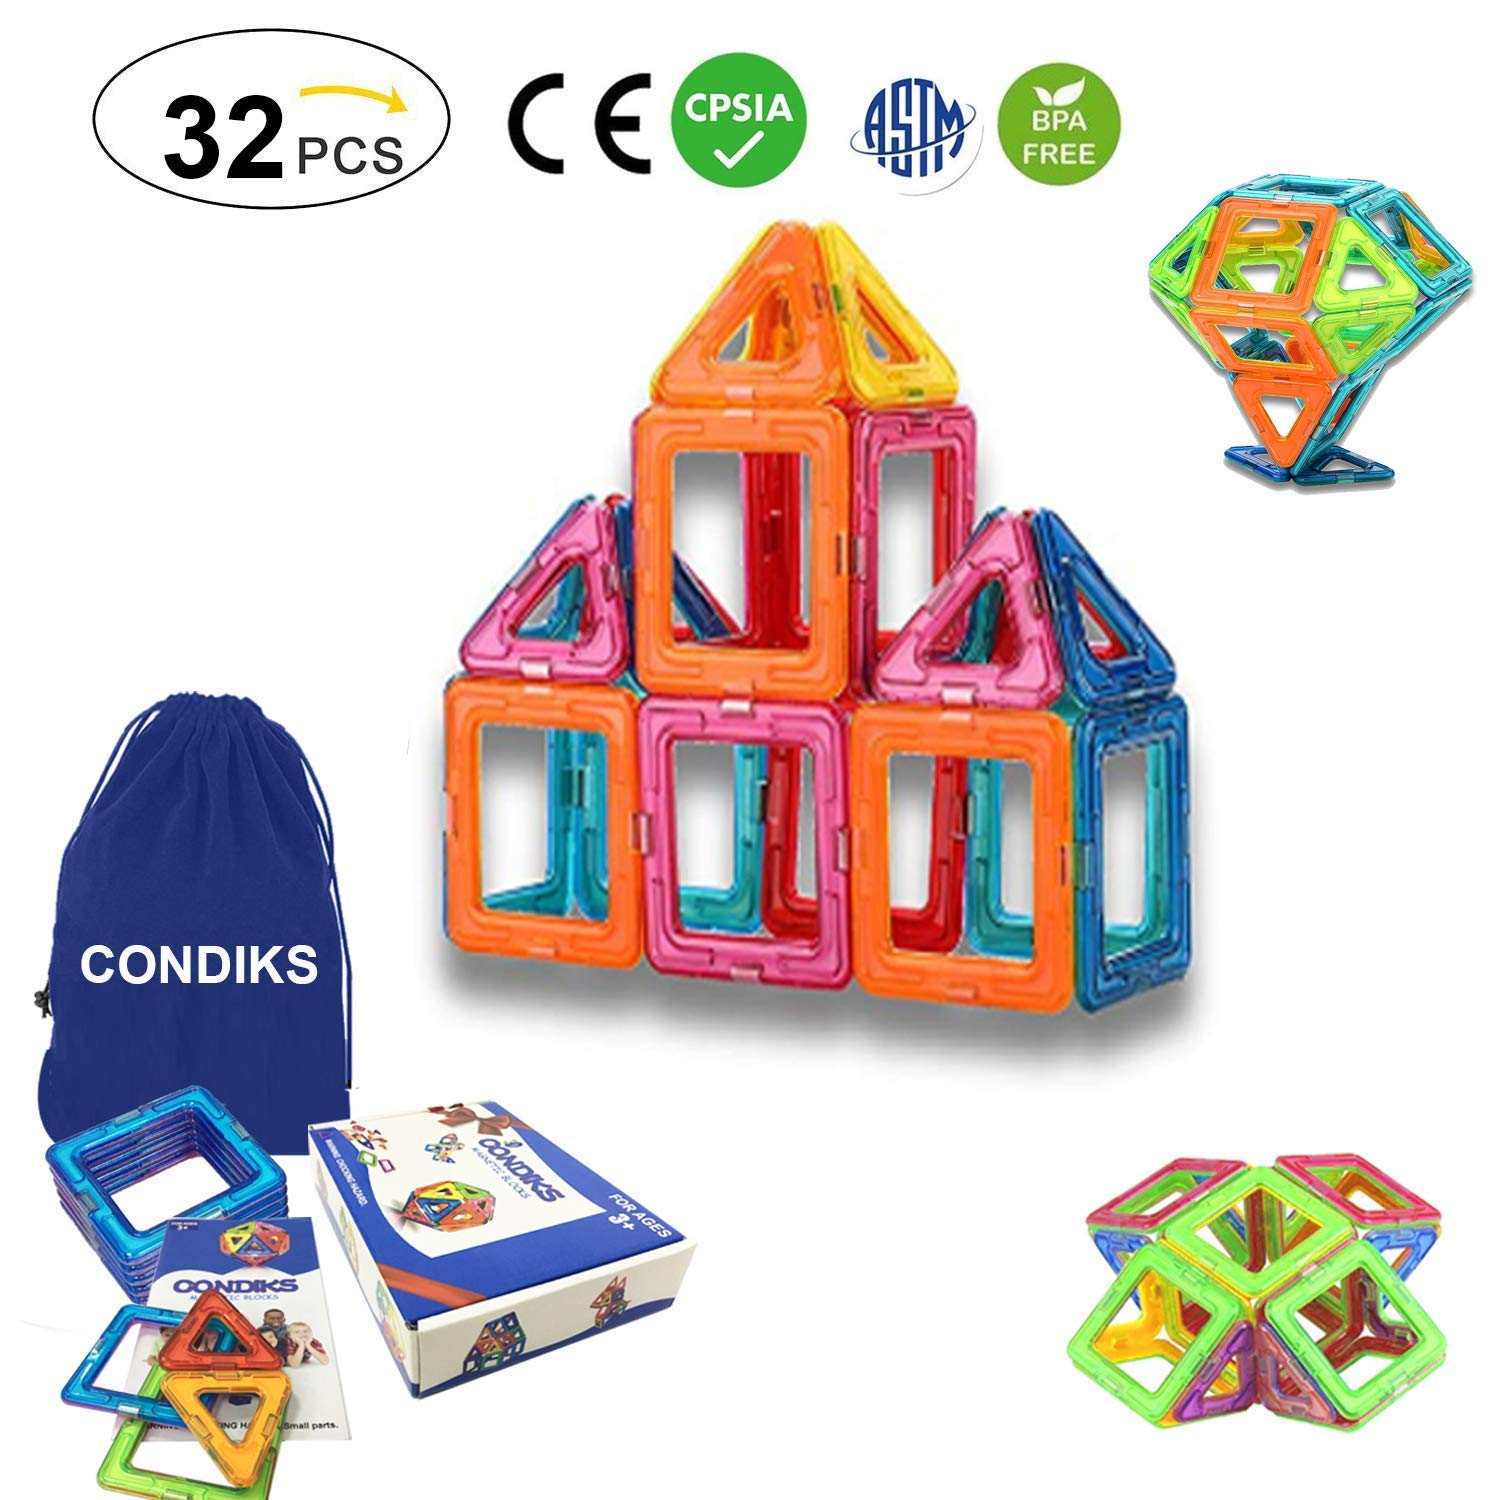 58 Pieces Magnetic Tiles magnetic Building Blocks Toys for Kids